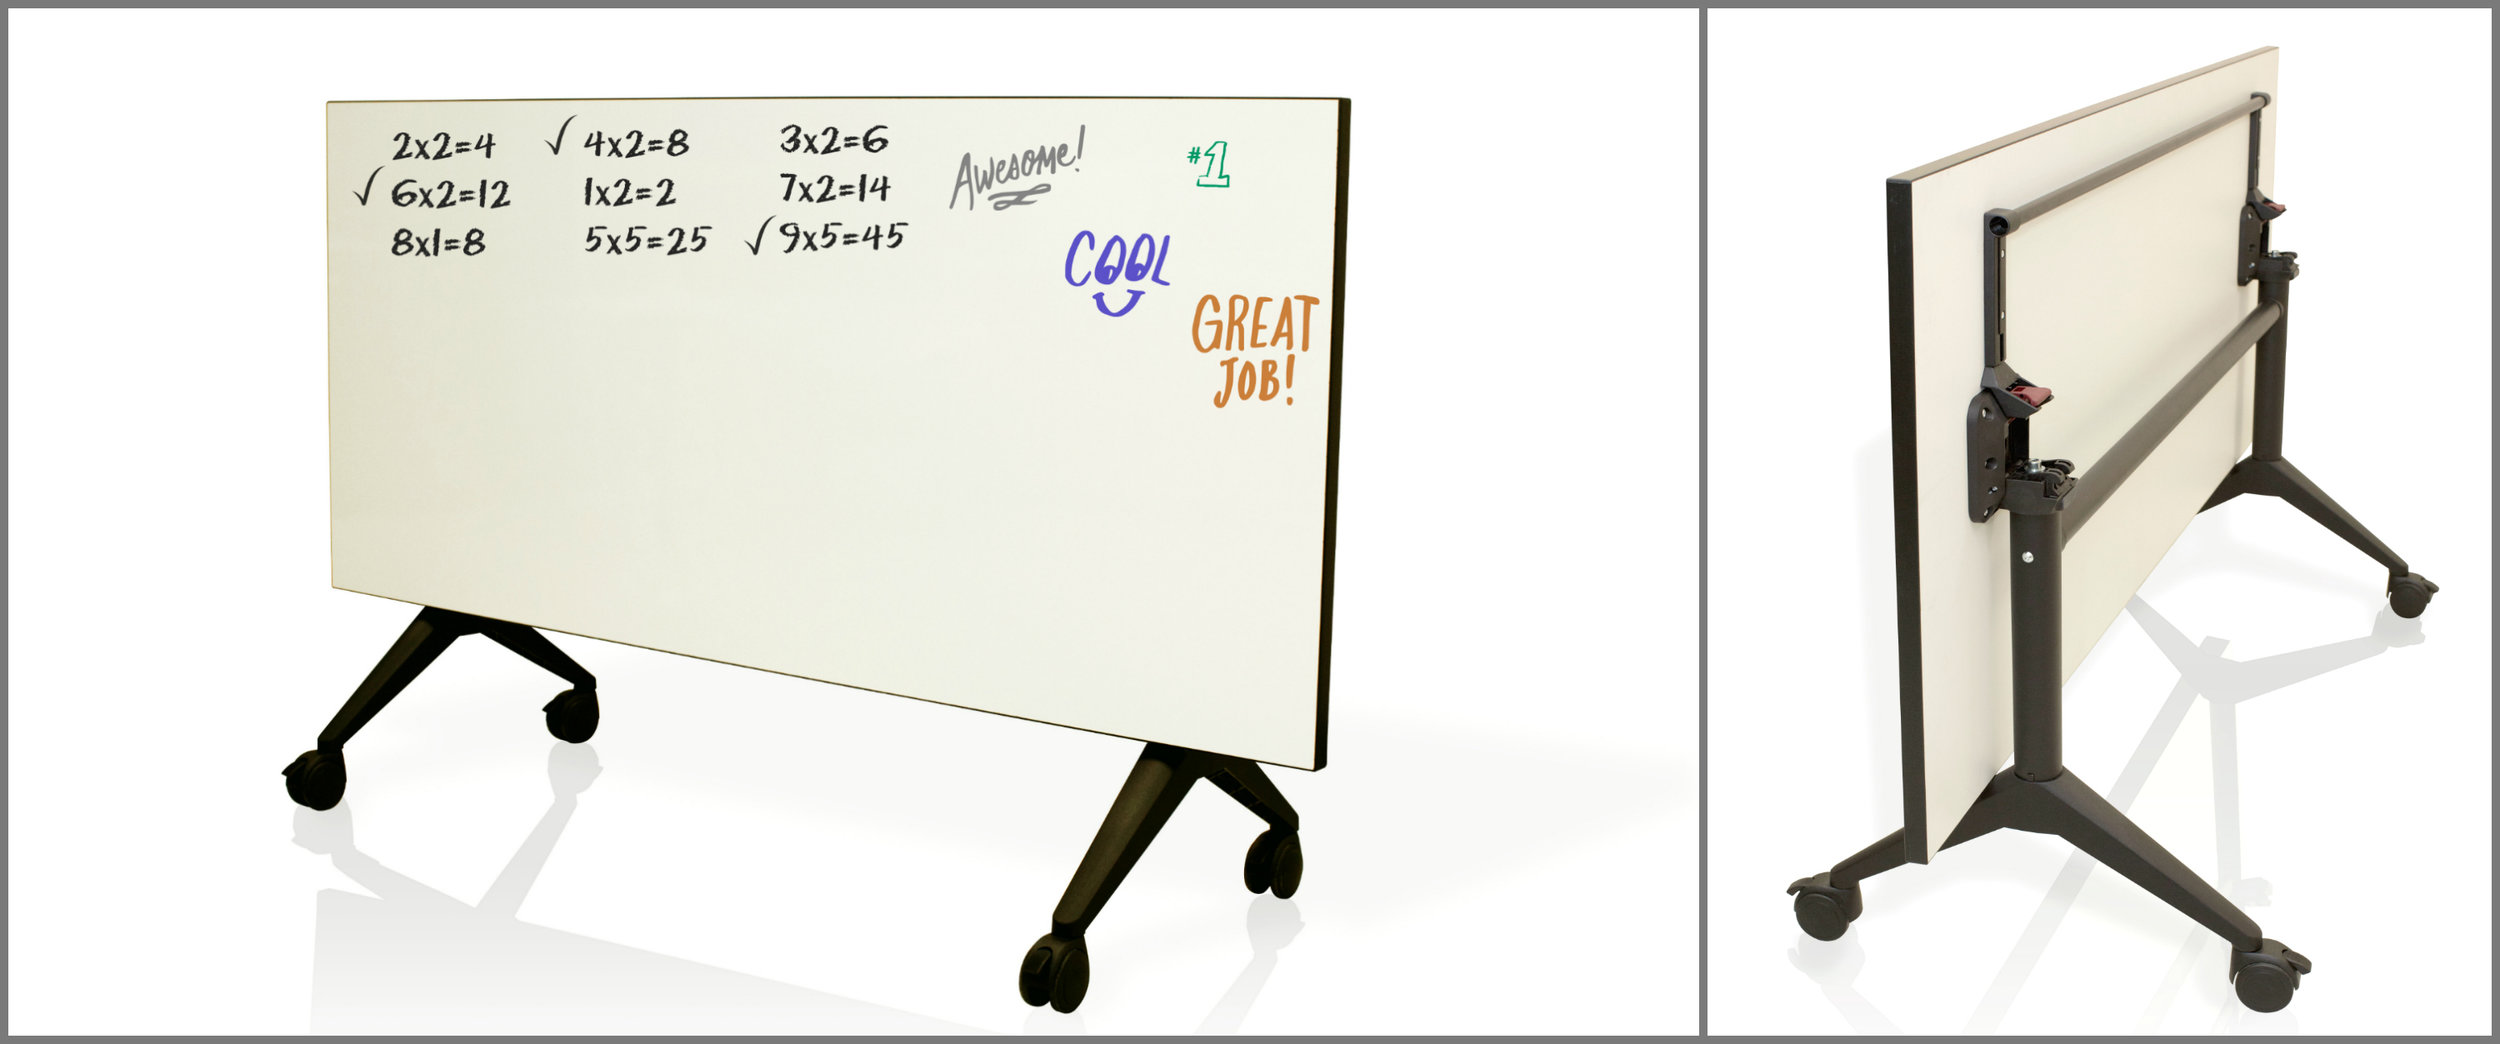 The Tilt Table - Show and tell will never be the same with our Dry Erase Tilt Table! By giving students the freedom to write, draw or solve problems on a dry erase surface, it cultivates creativity and encourages students to become more confident in their work. The tilt feature of this table is an added bonus for teachers and students, serving as a great way to display student work or to instruct from!